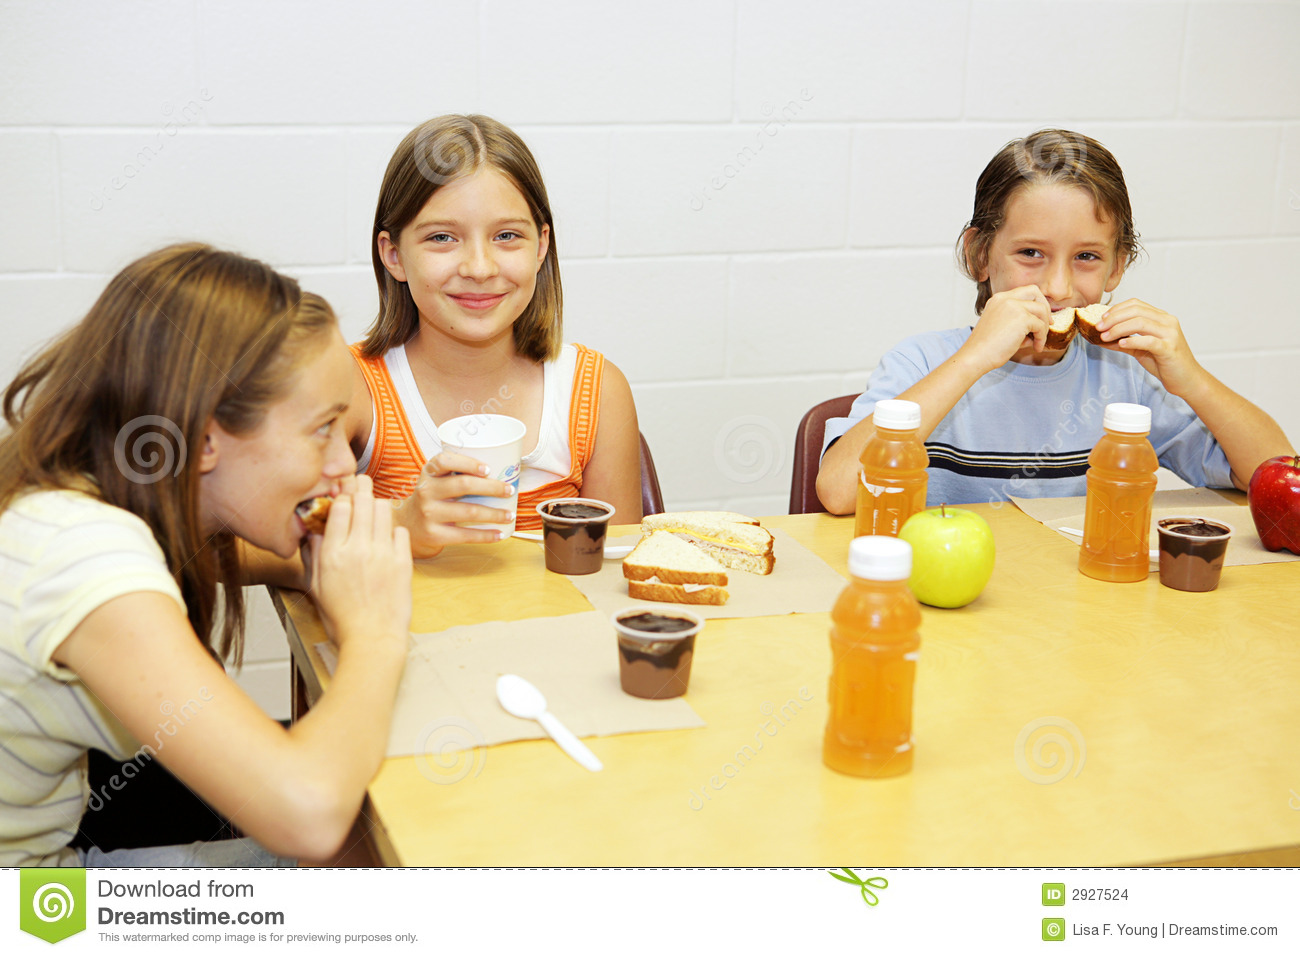 School Lunch in Cafeteria